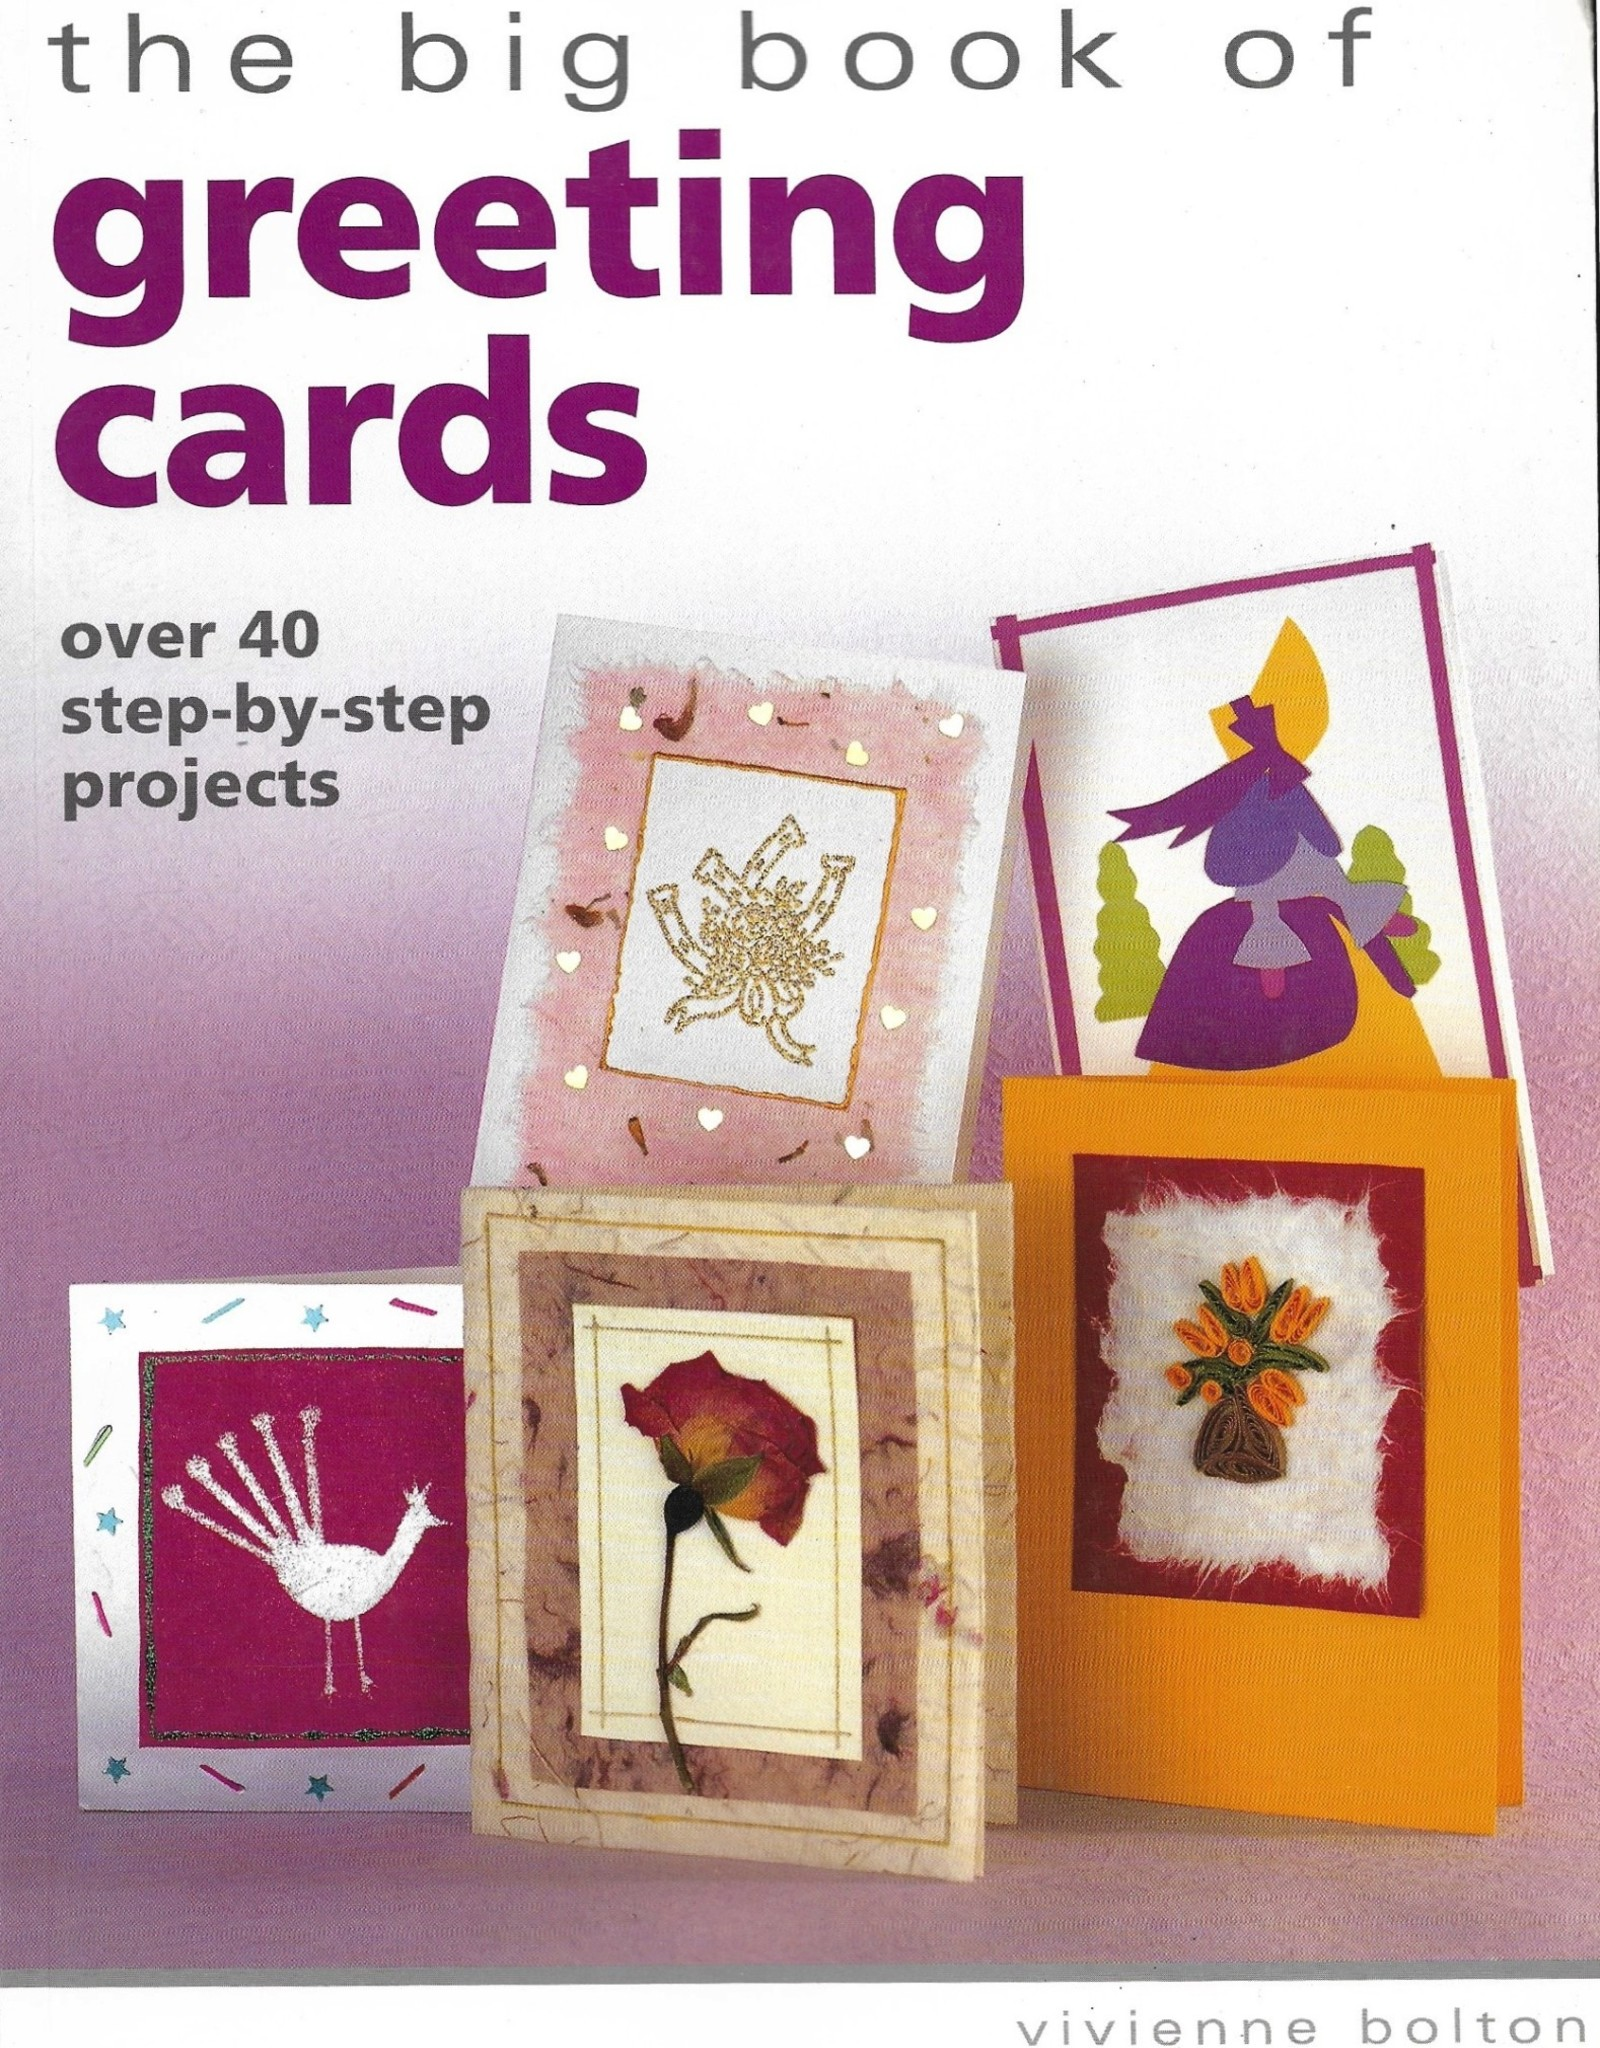 The Big Book of Greeting Cards